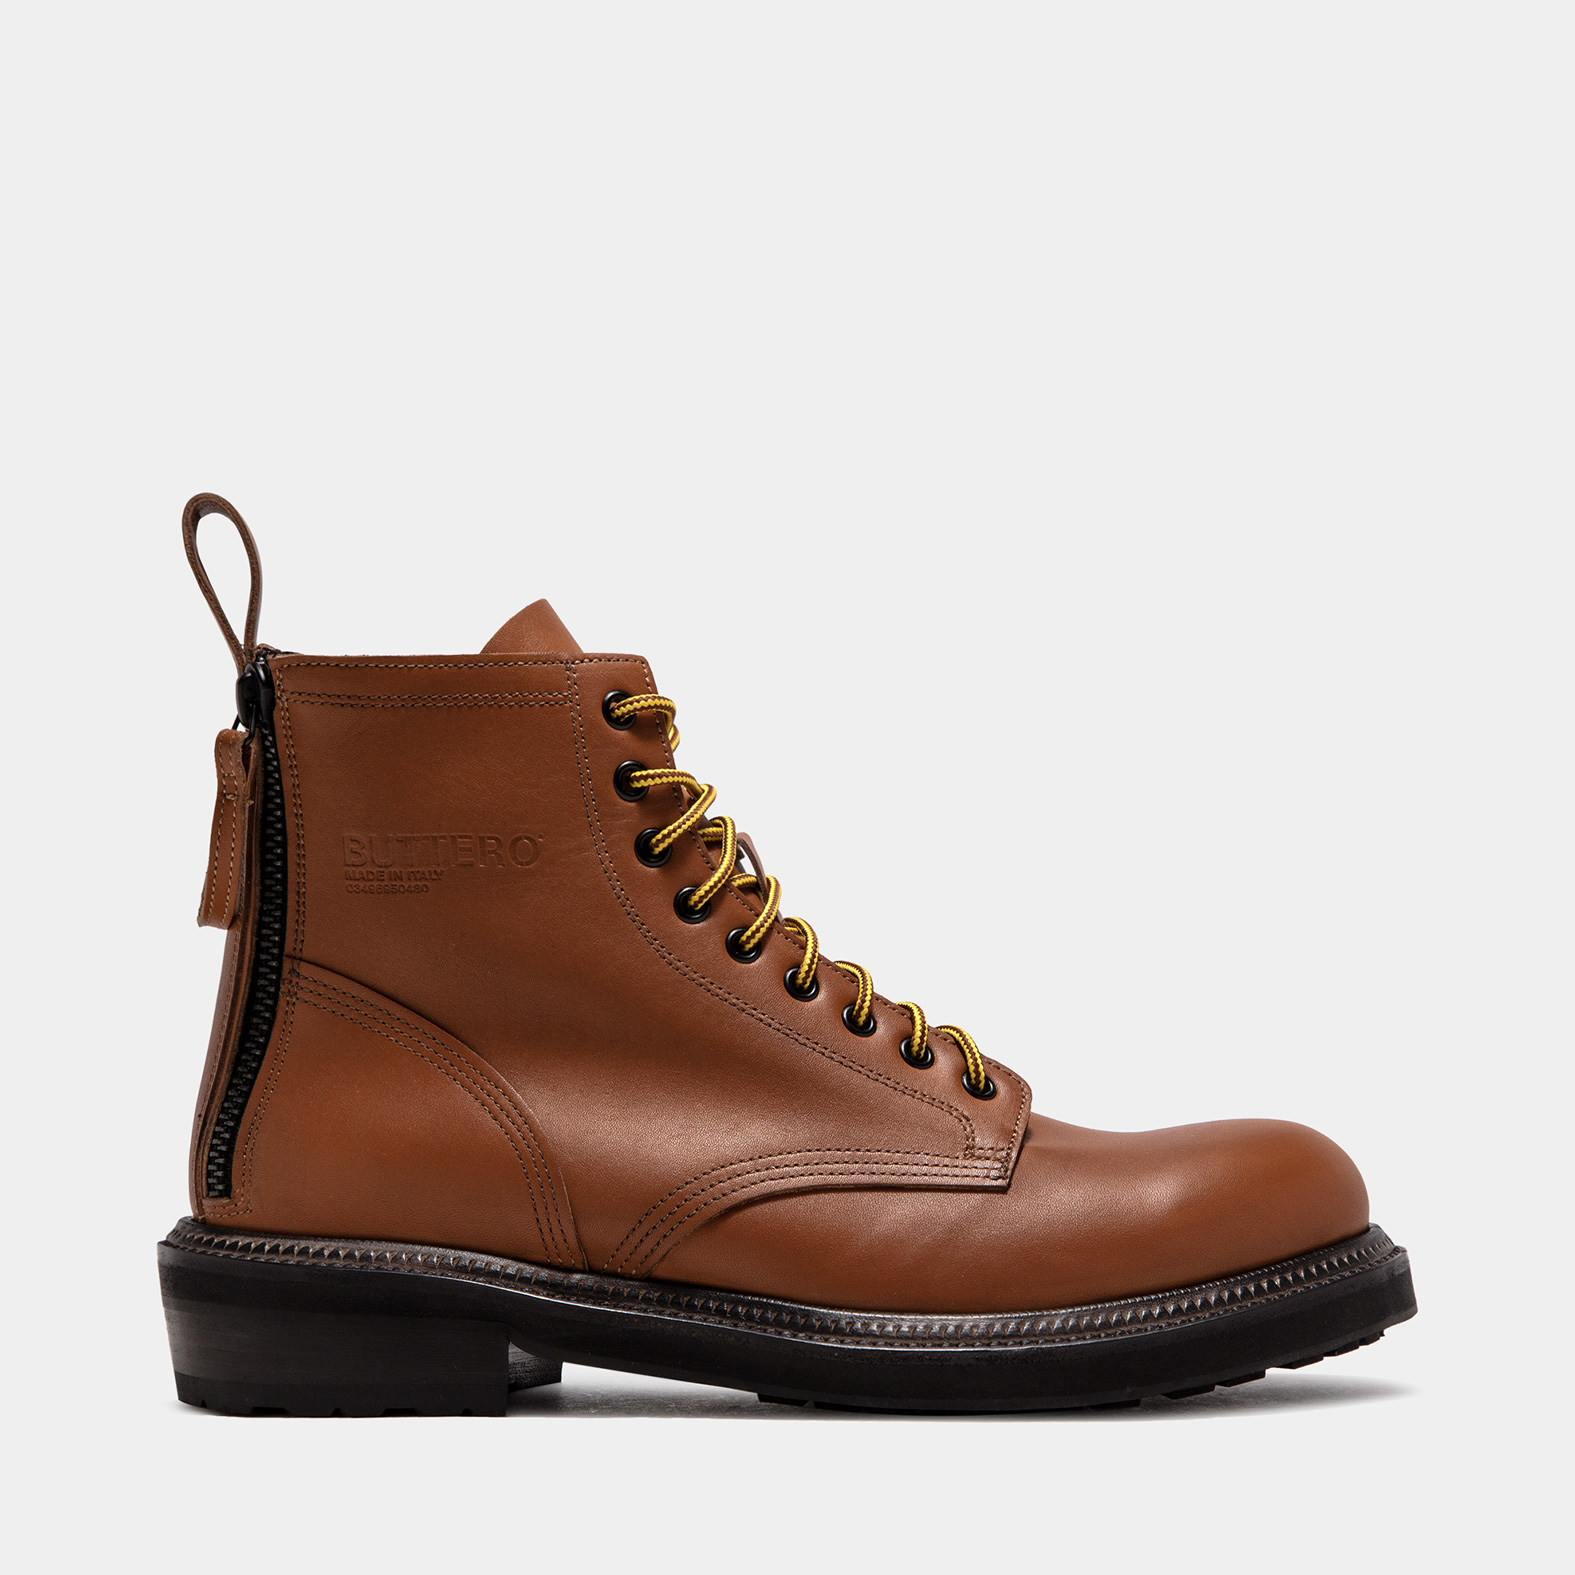 BUTTERO: CARGO BOOTS IN NATURAL BROWN PULL EFFECT LEATHER